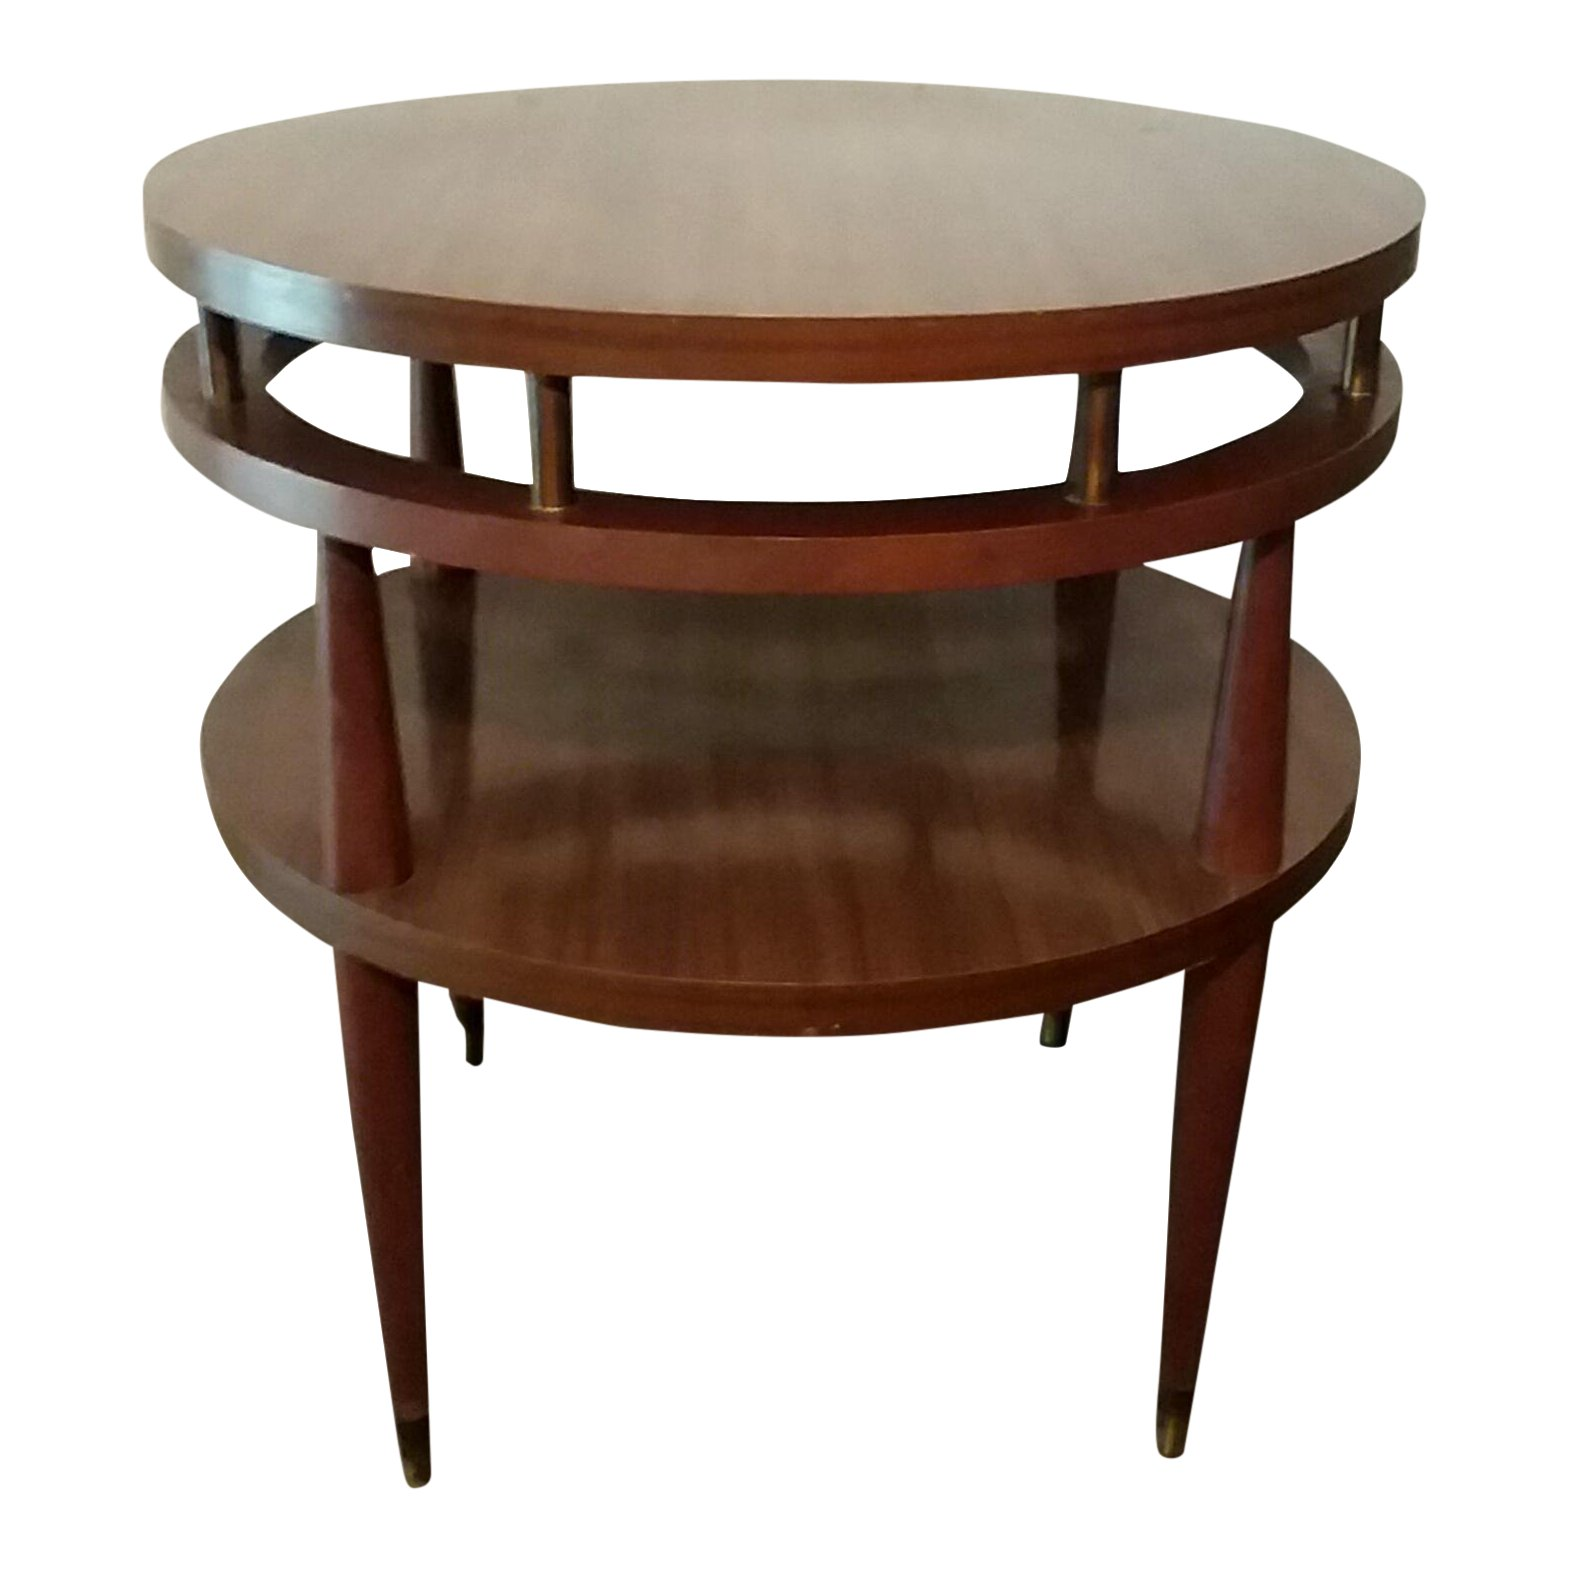 mid century modern round accent table chairish high top dining for glass coffee with brass legs antique serving outdoor patio bench rustic end target makeup bedroom nightstand